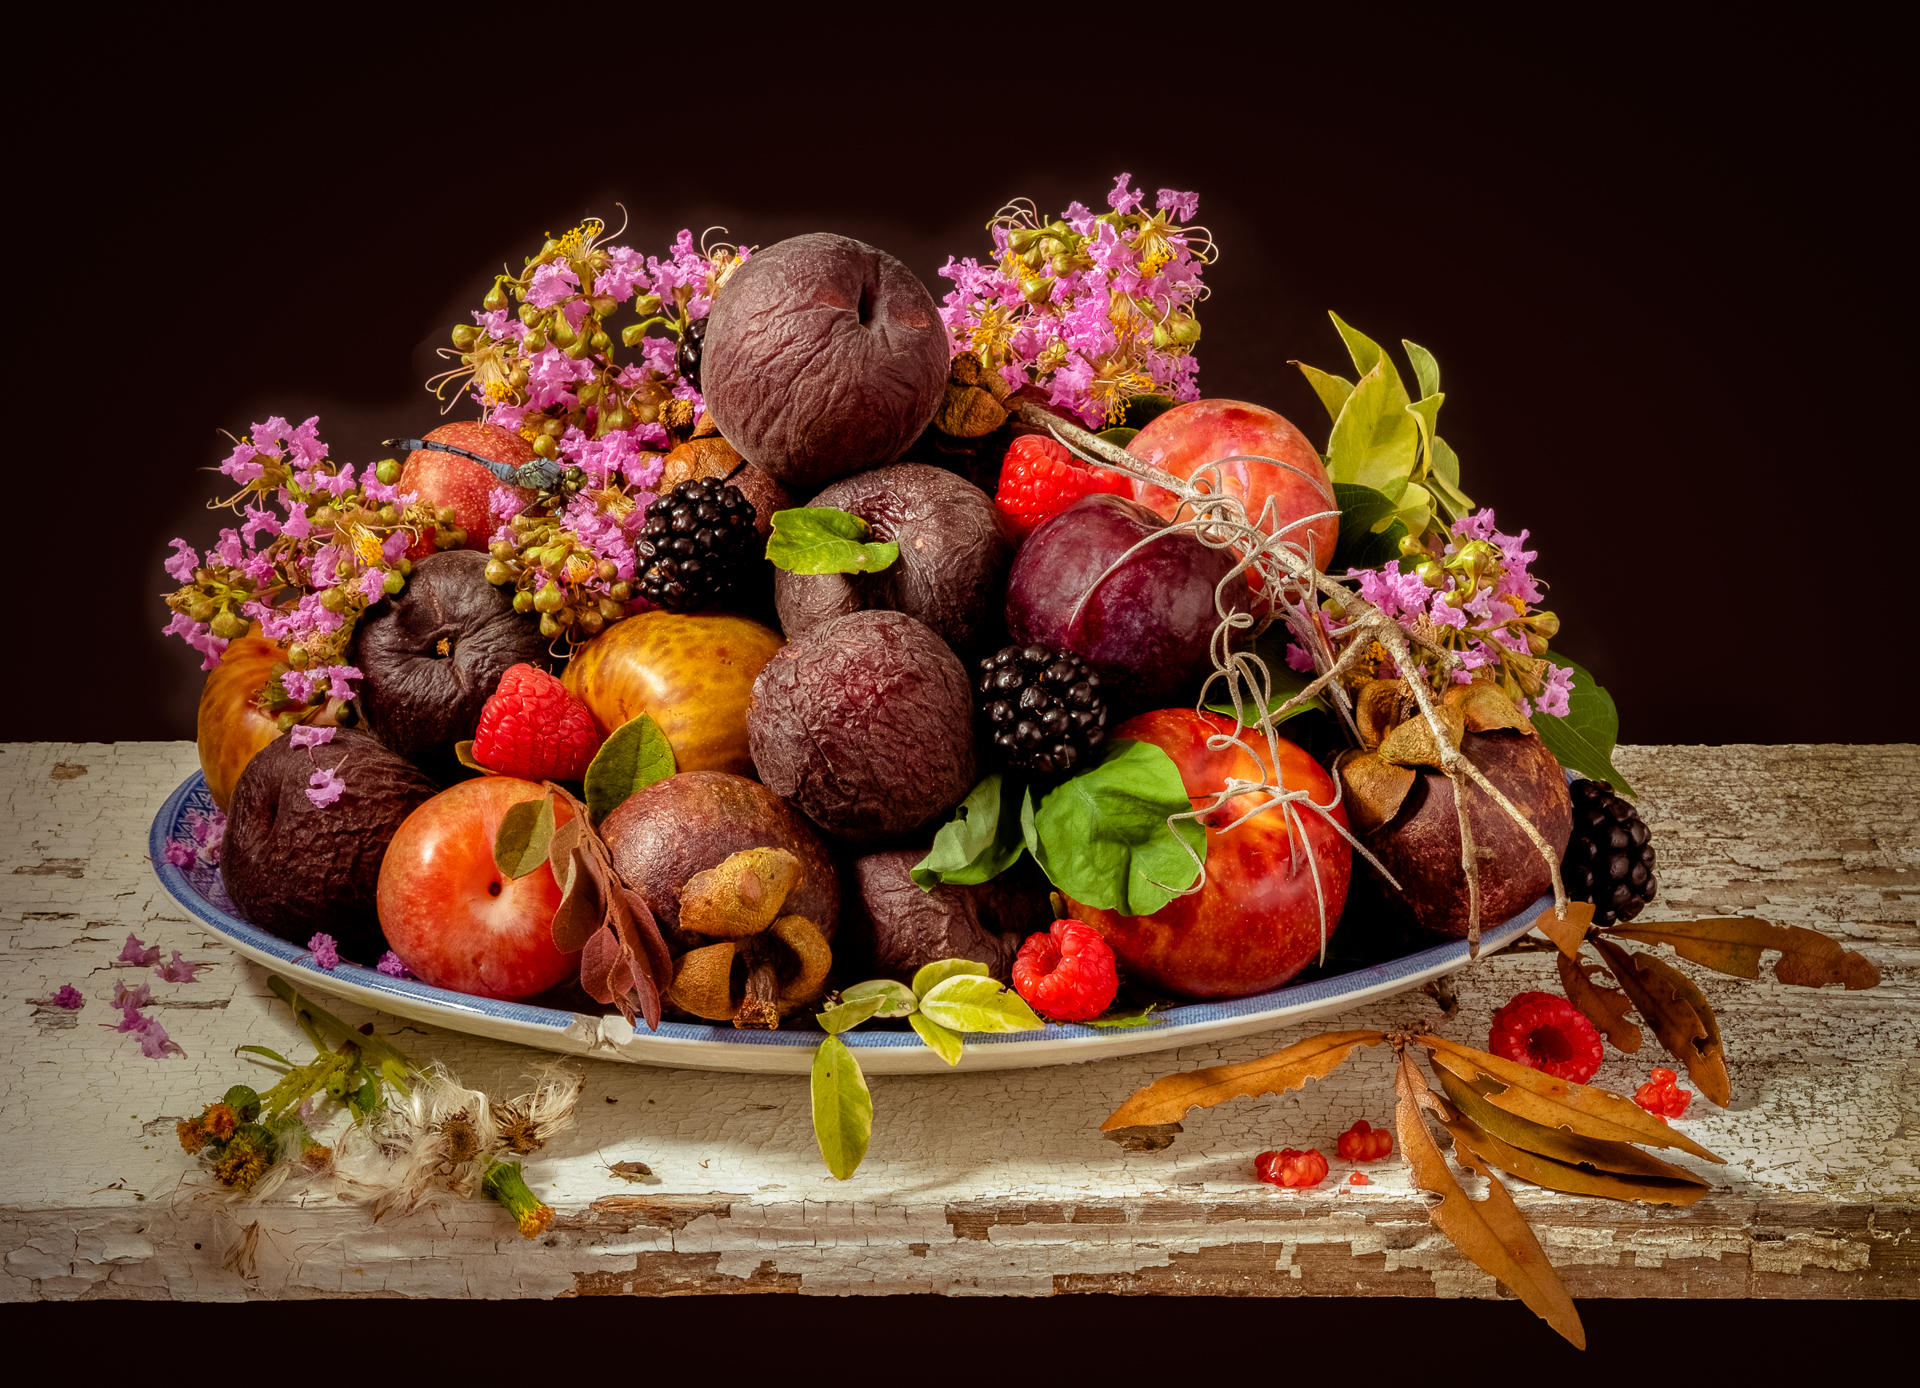 a bowl of fresh fruit with flowers - a still life photograph